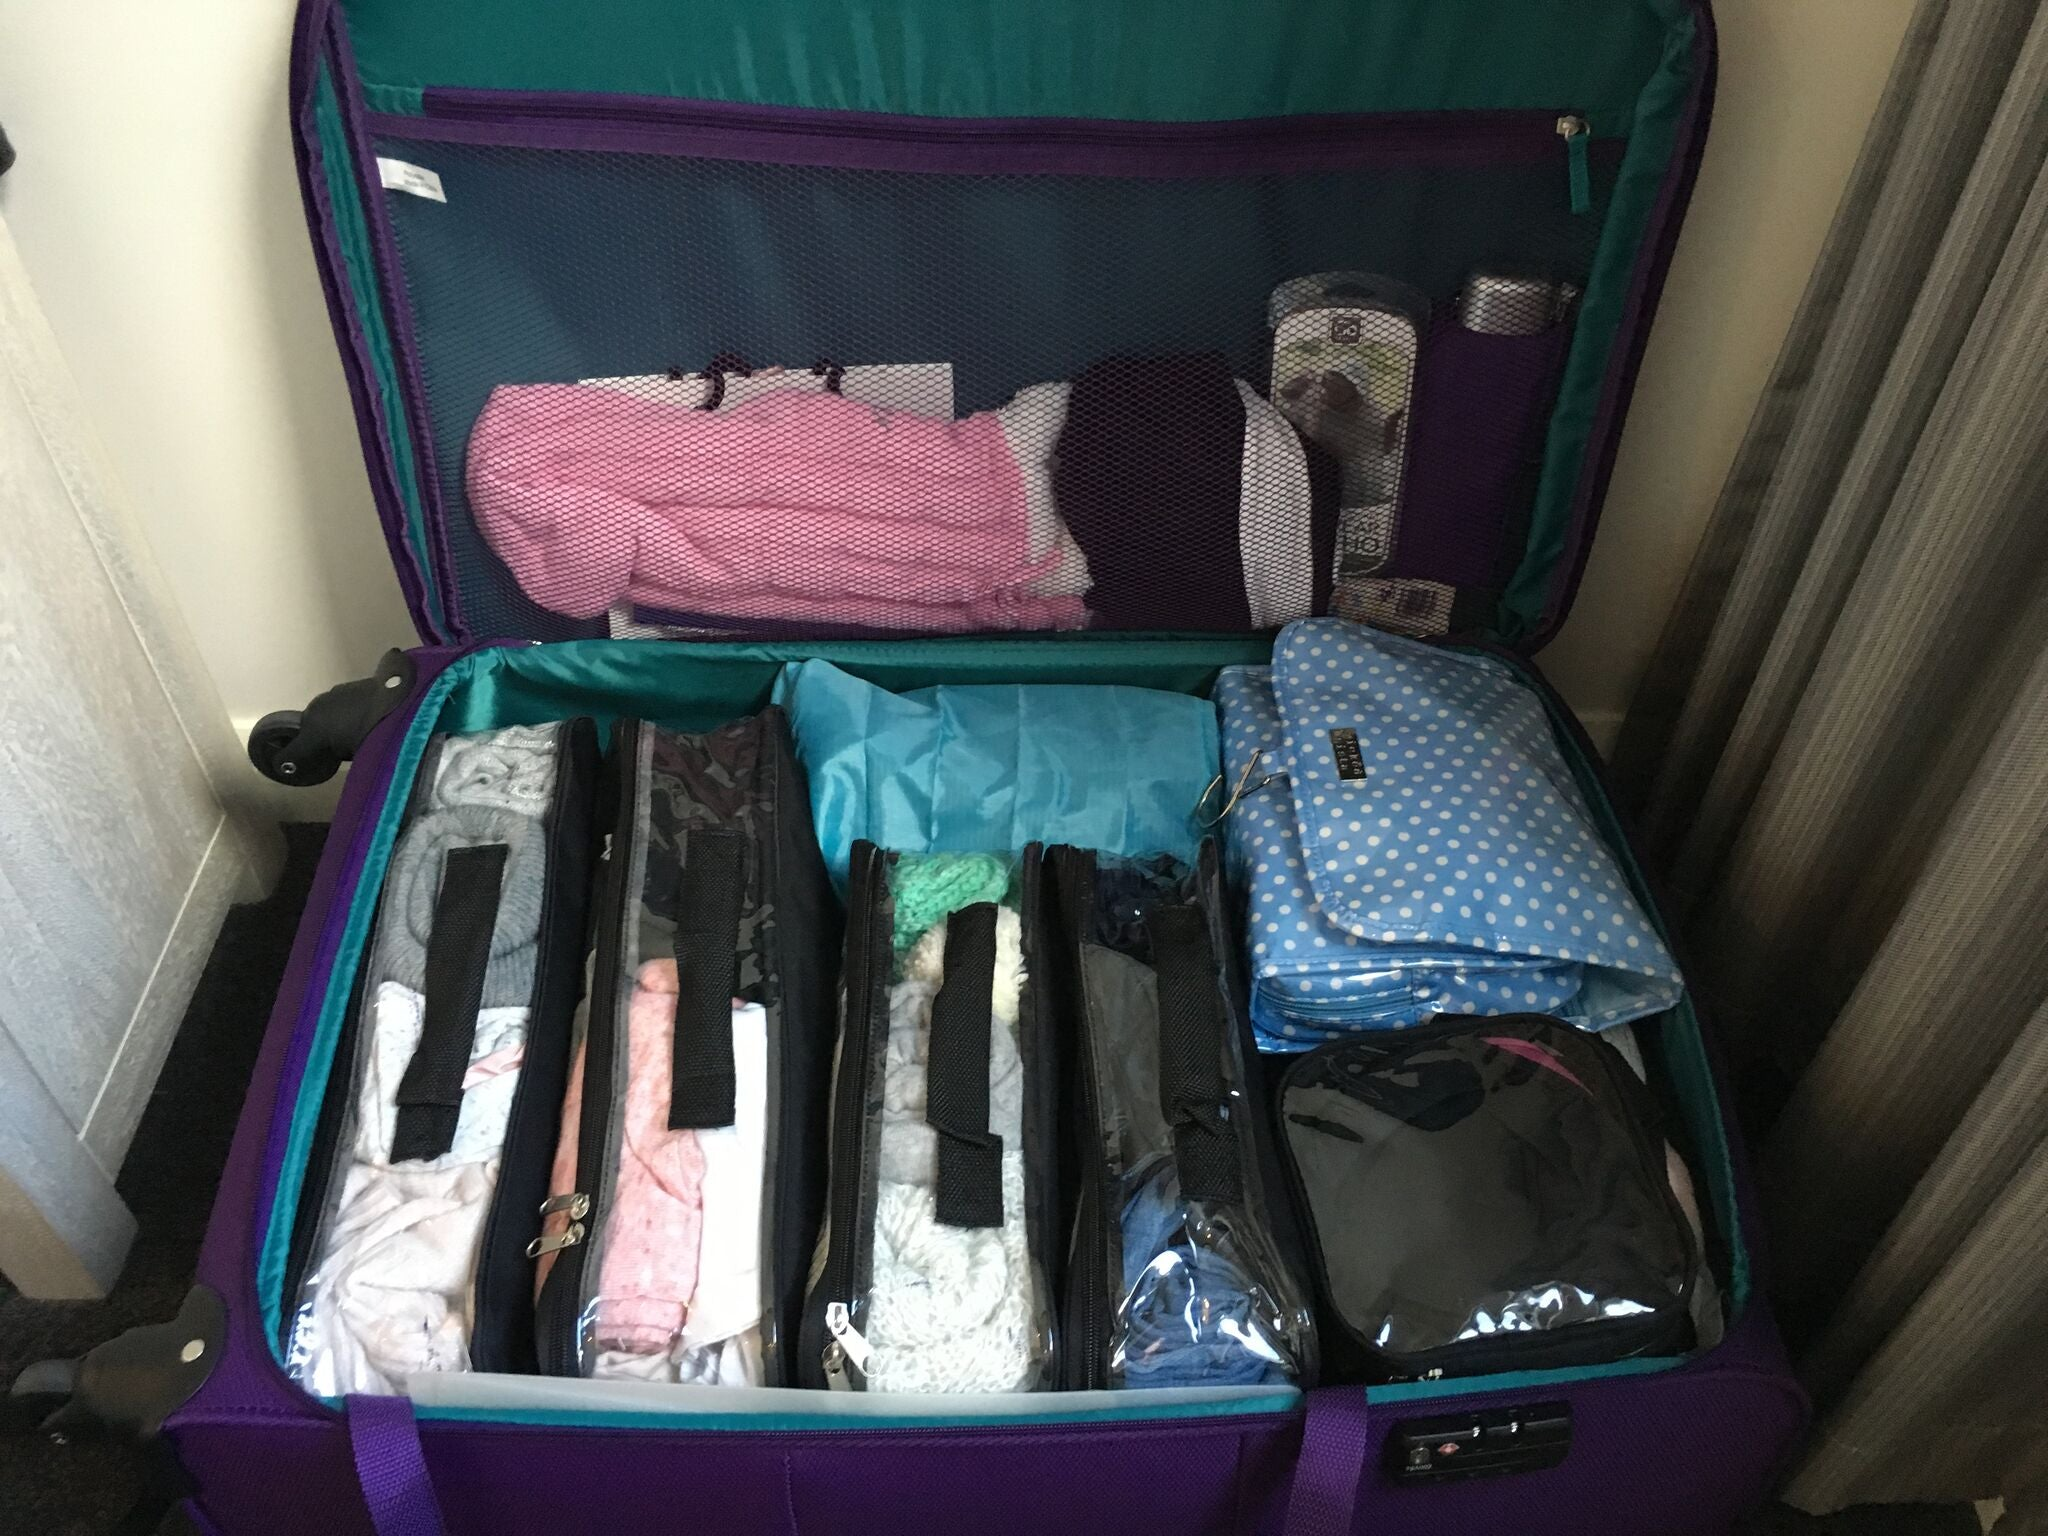 Suitcase packed for debarkation day